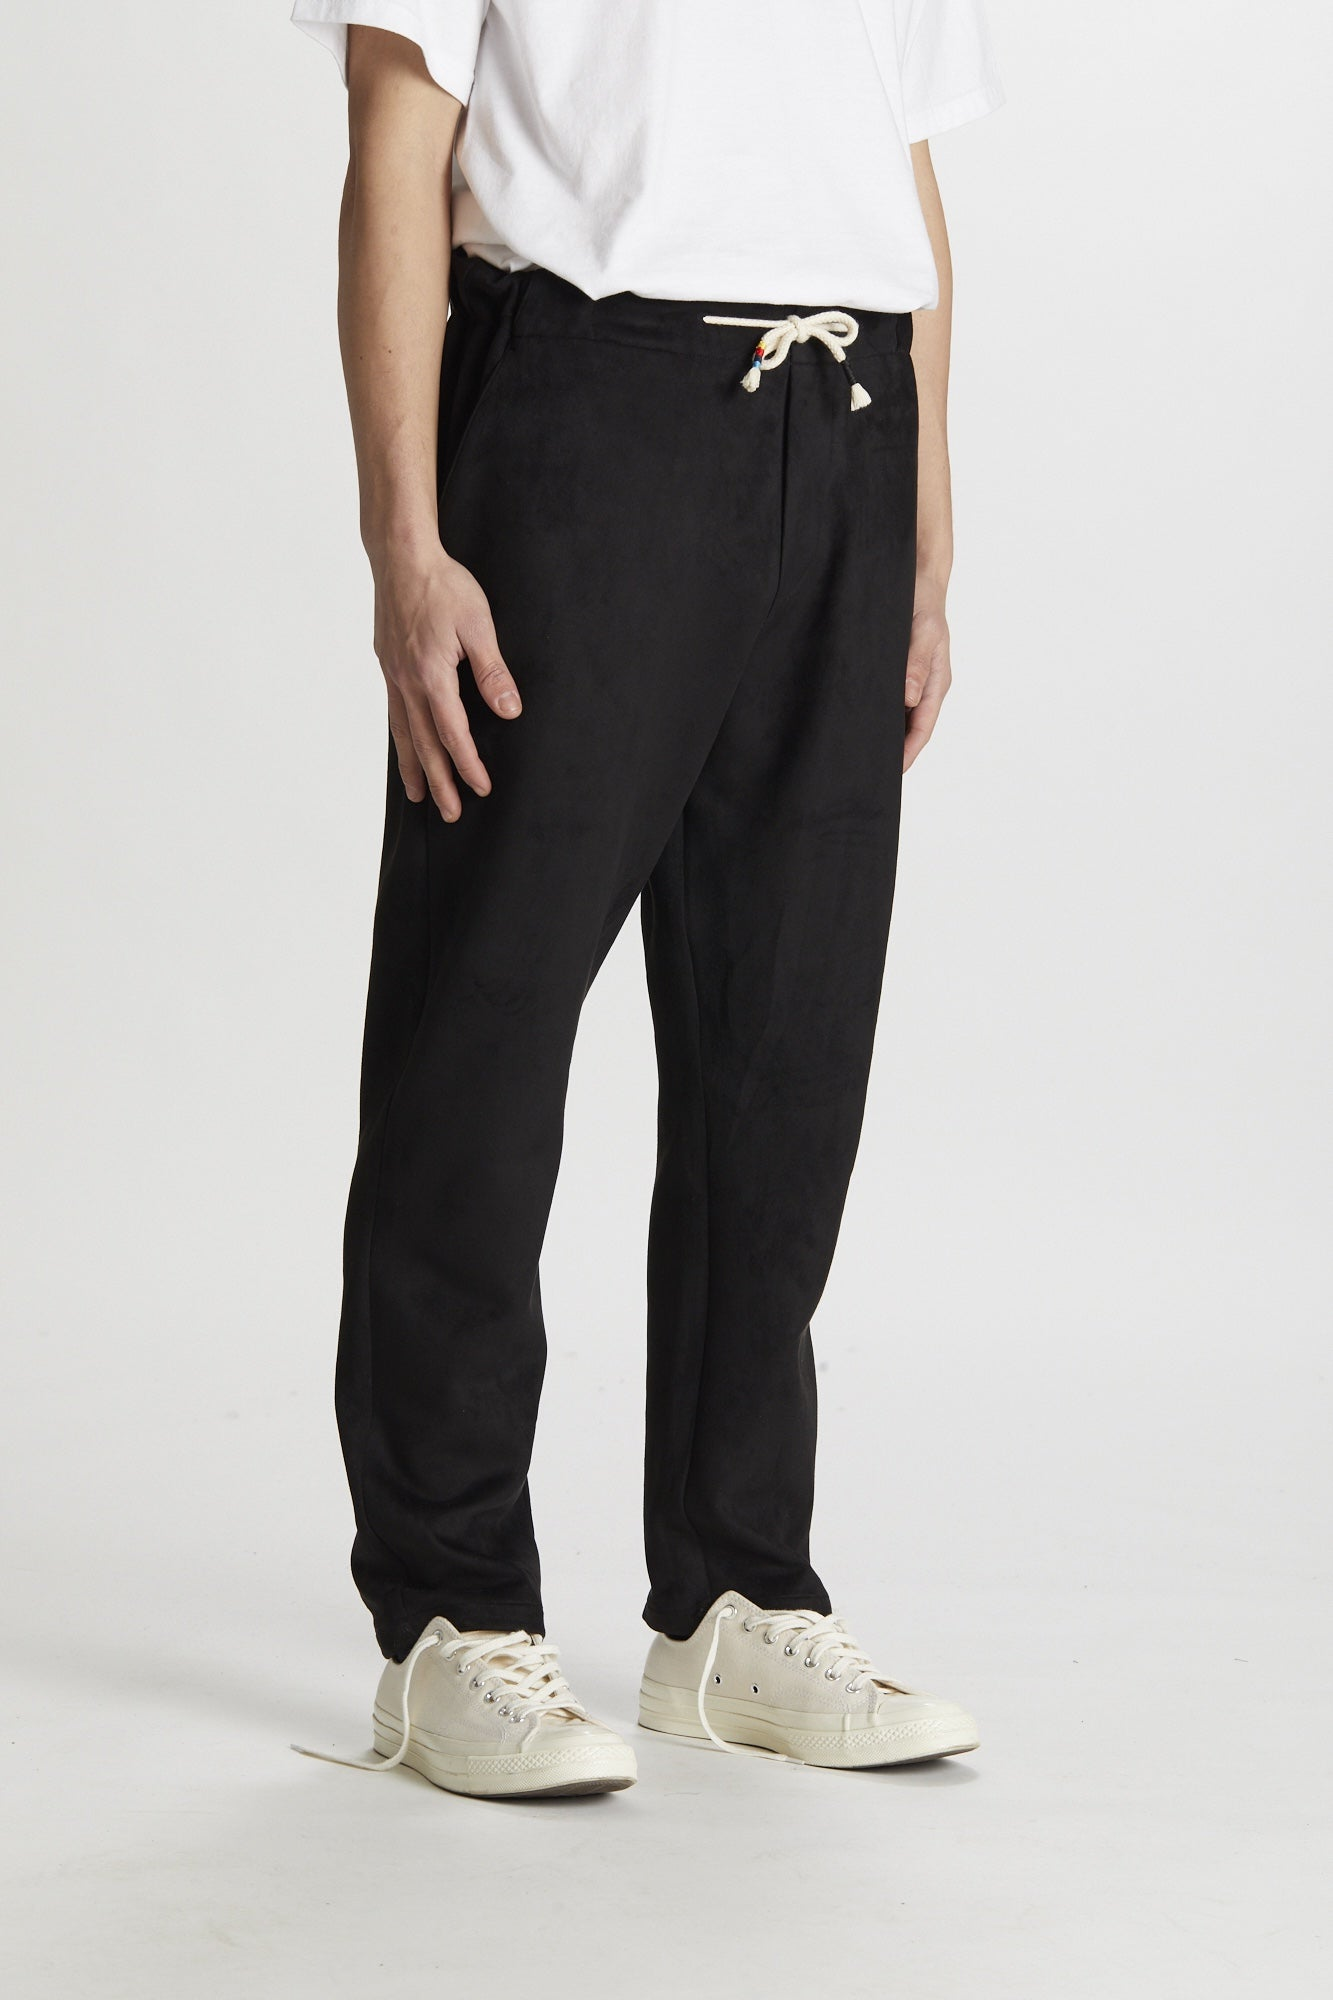 Silted Company Coffin Pant Eco Suede Black